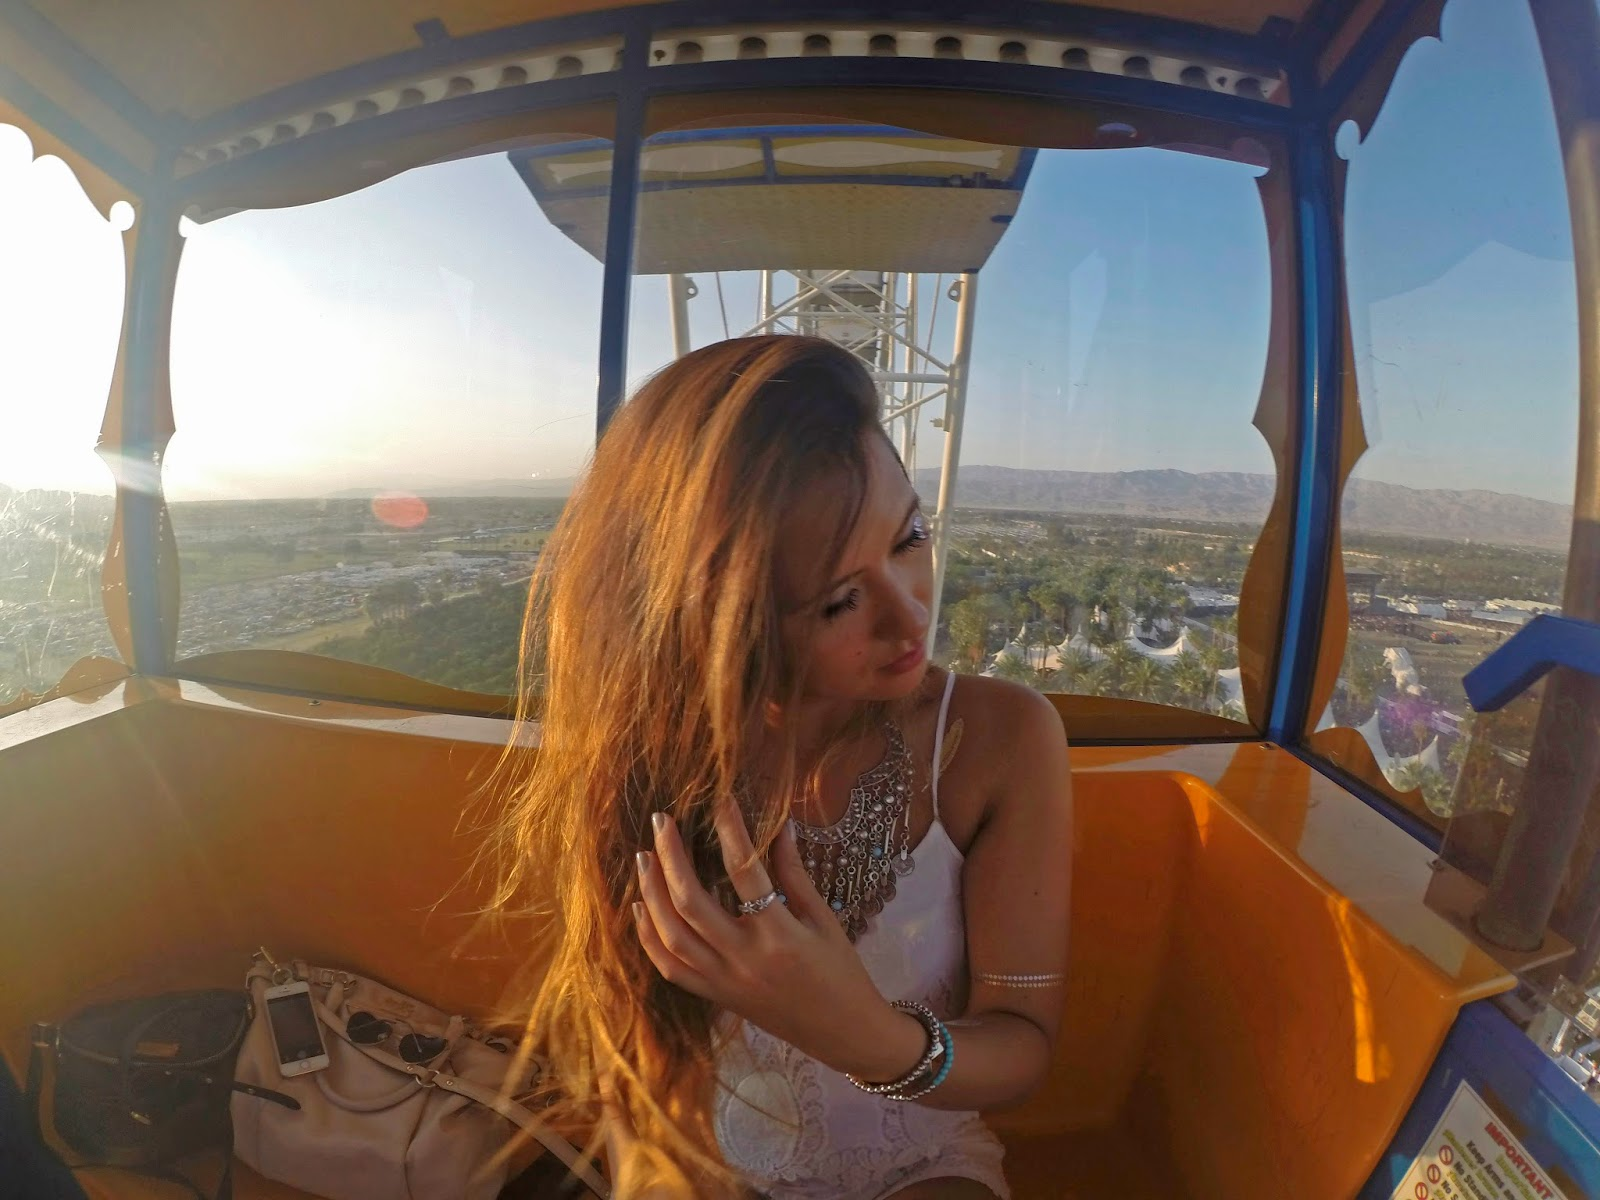 Fashion Blogger Boho Nouveau in the Coachella ferris wheel - Peace & Love: Coachella Outfits by popular Orlando fashion blogger Mash Elle